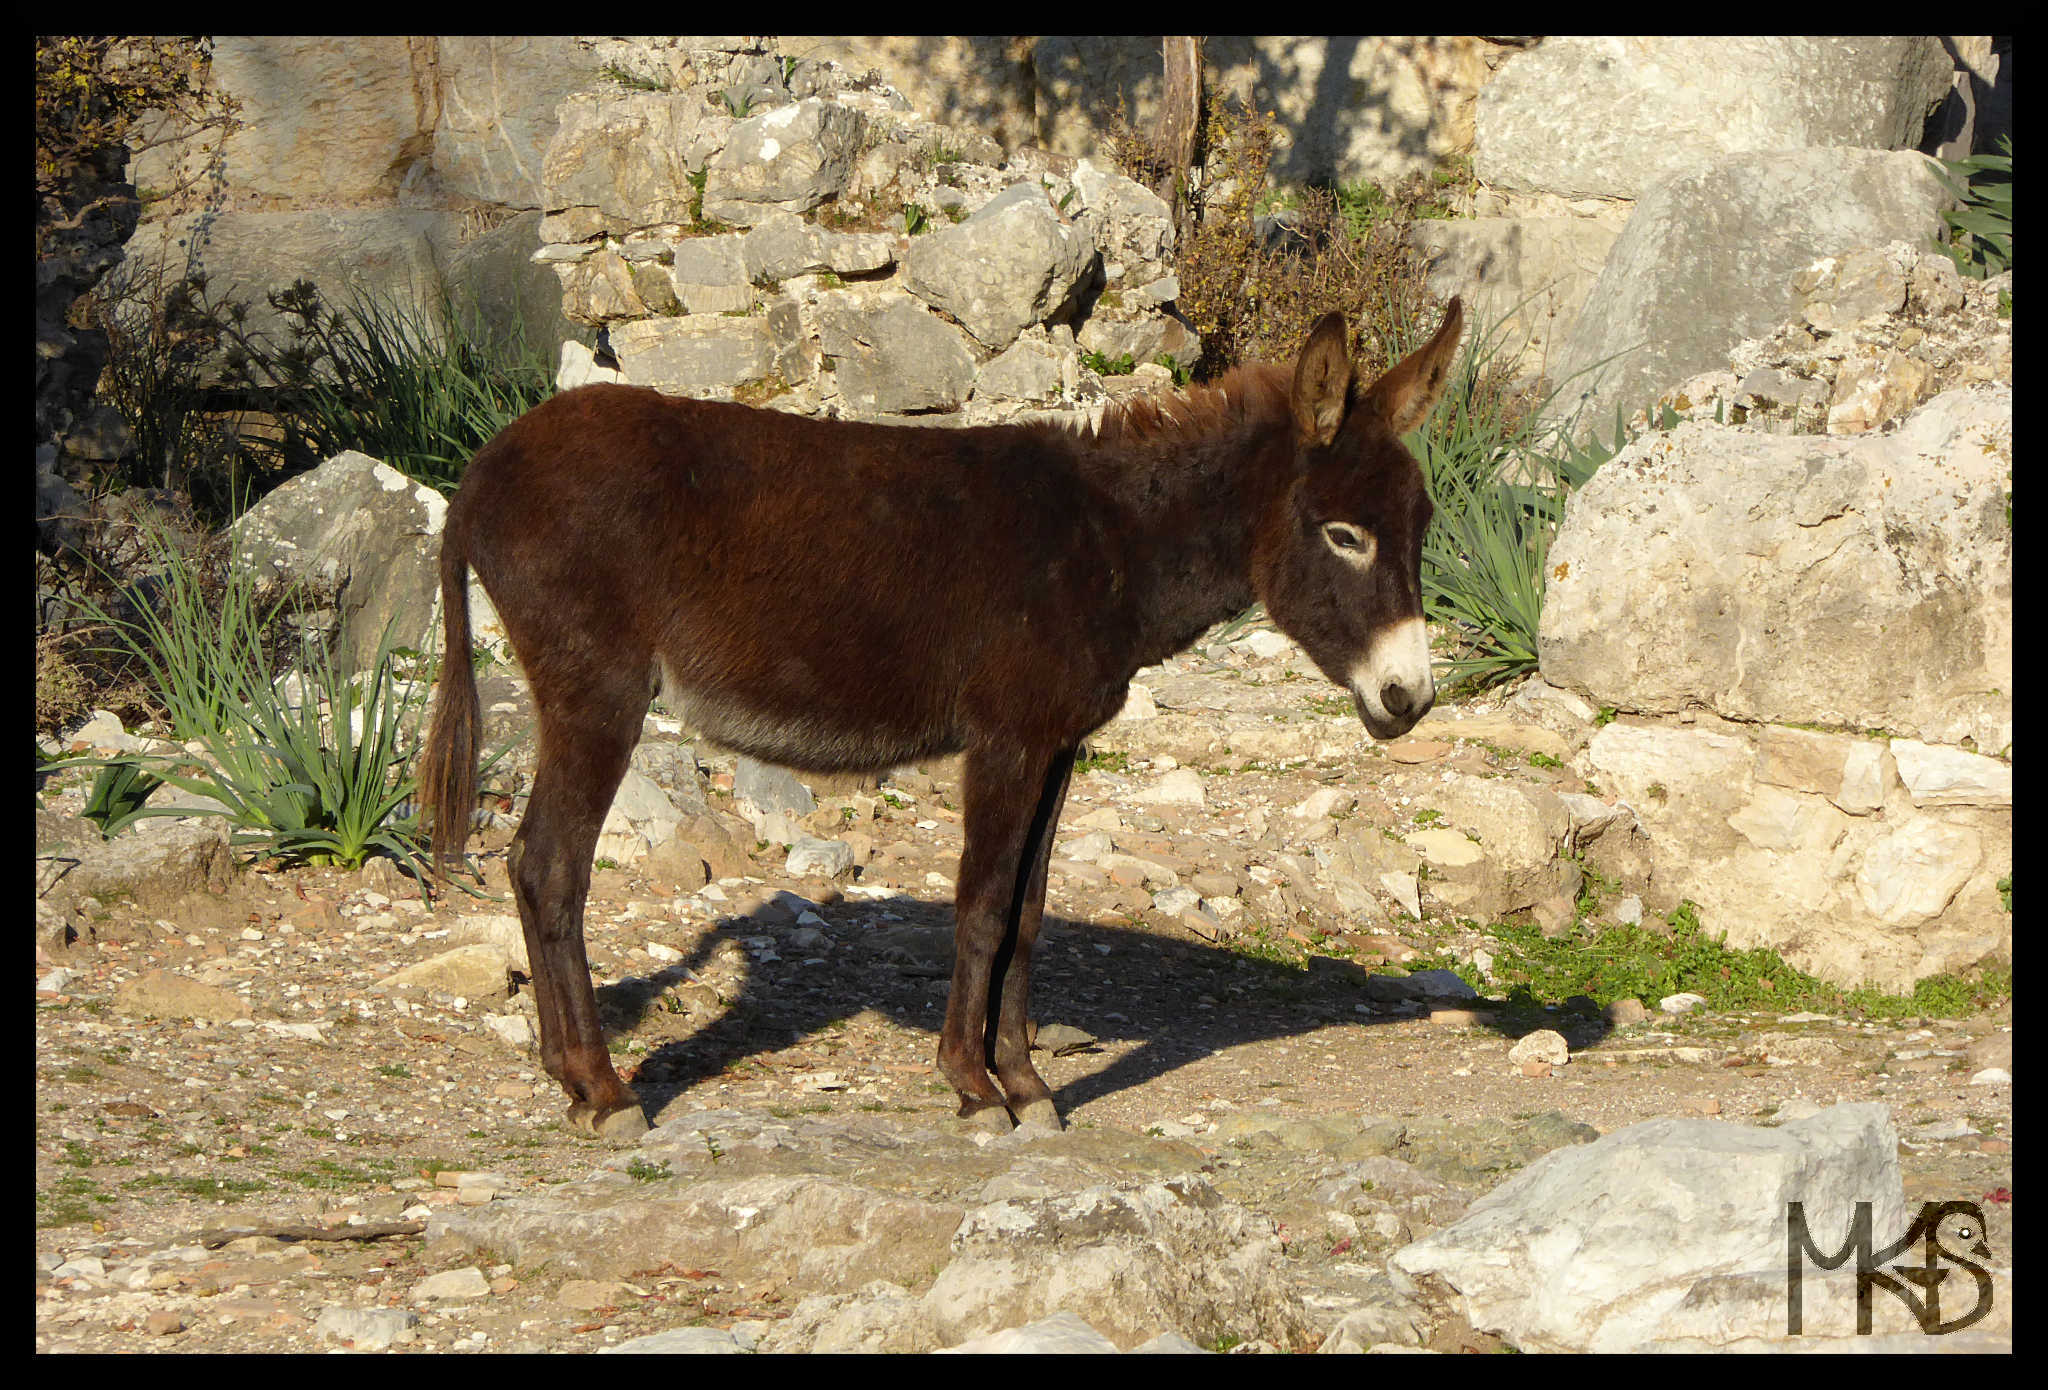 Donkey in Kaunos, Turkey